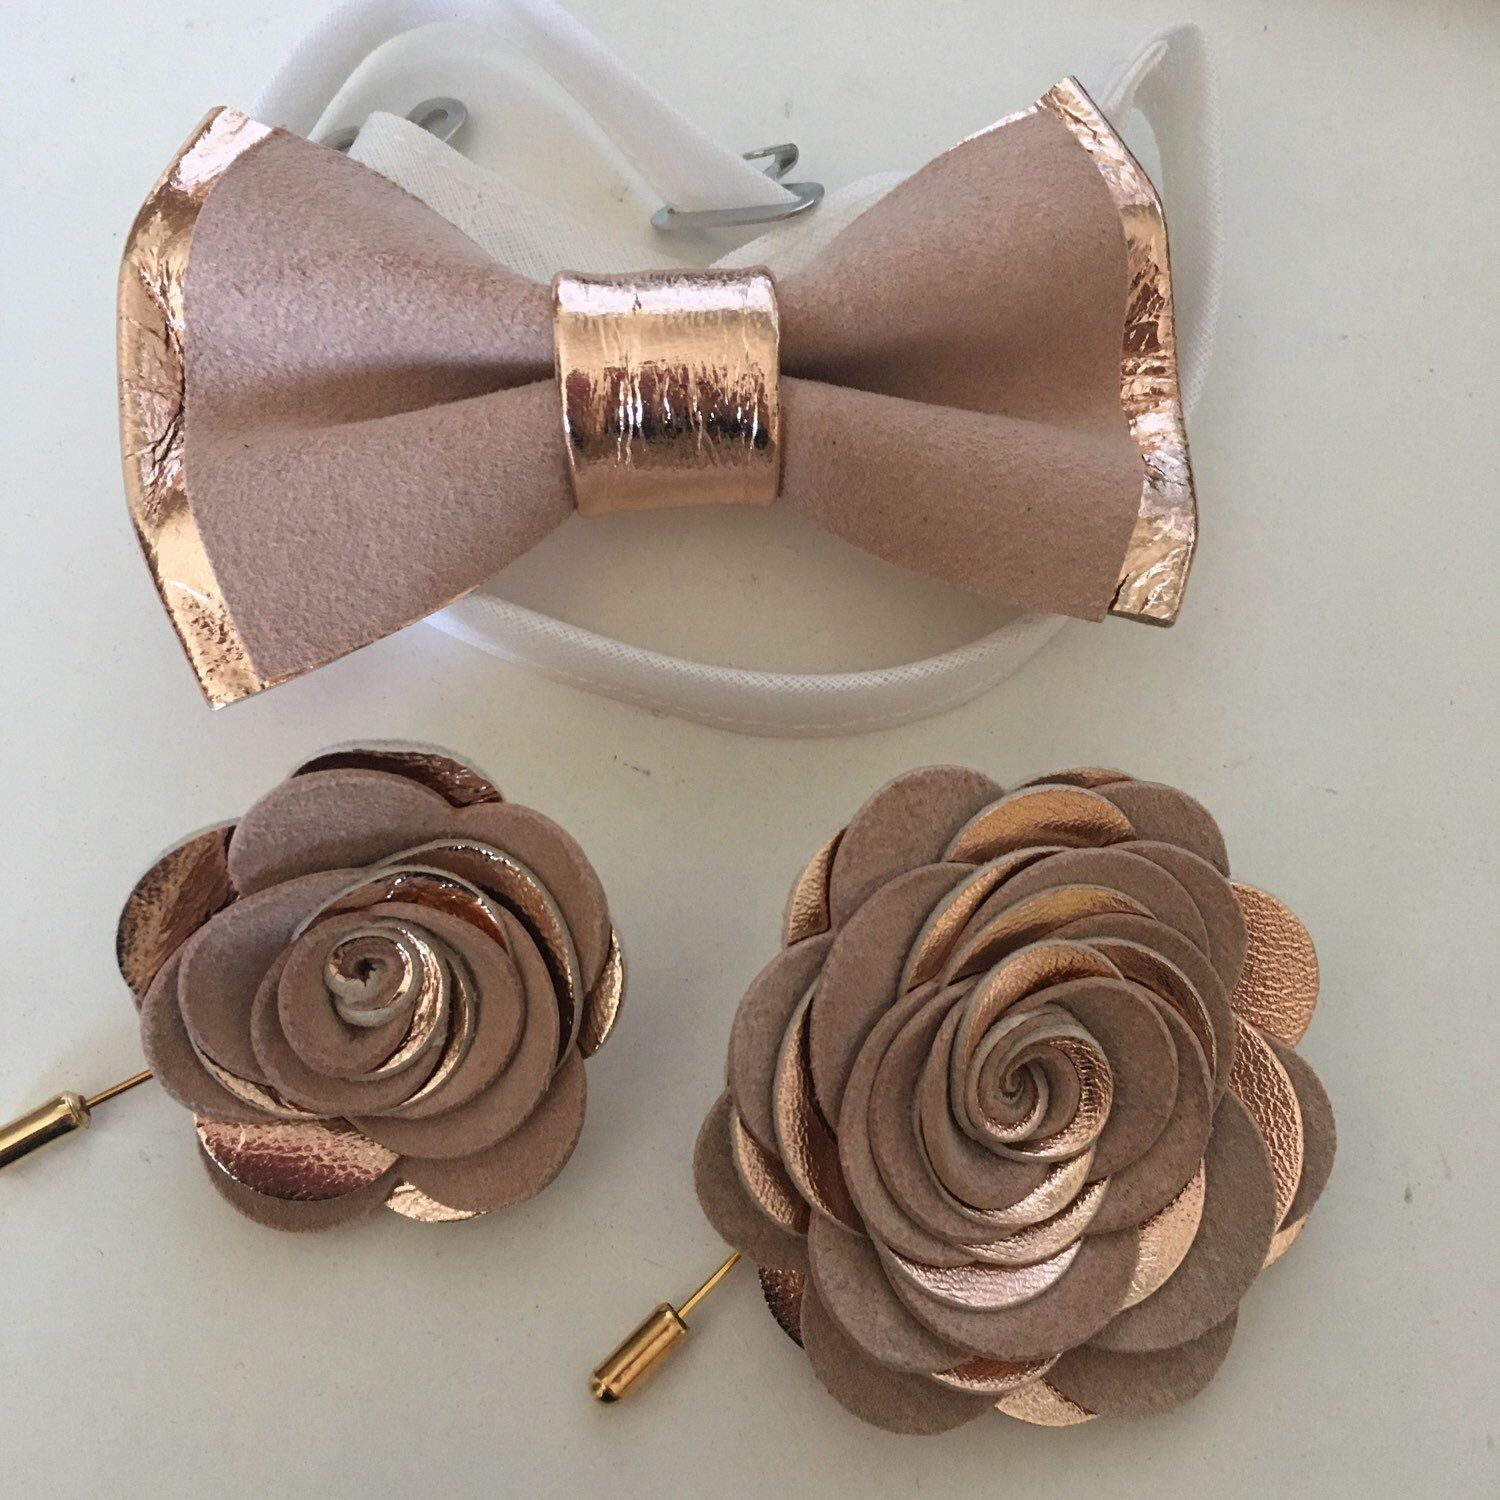 genuine gold leahther toddler bowtie,blush pink peach Rose Gold nude leather bow tie for men,boys rose gold wedding bow tie boutonnere